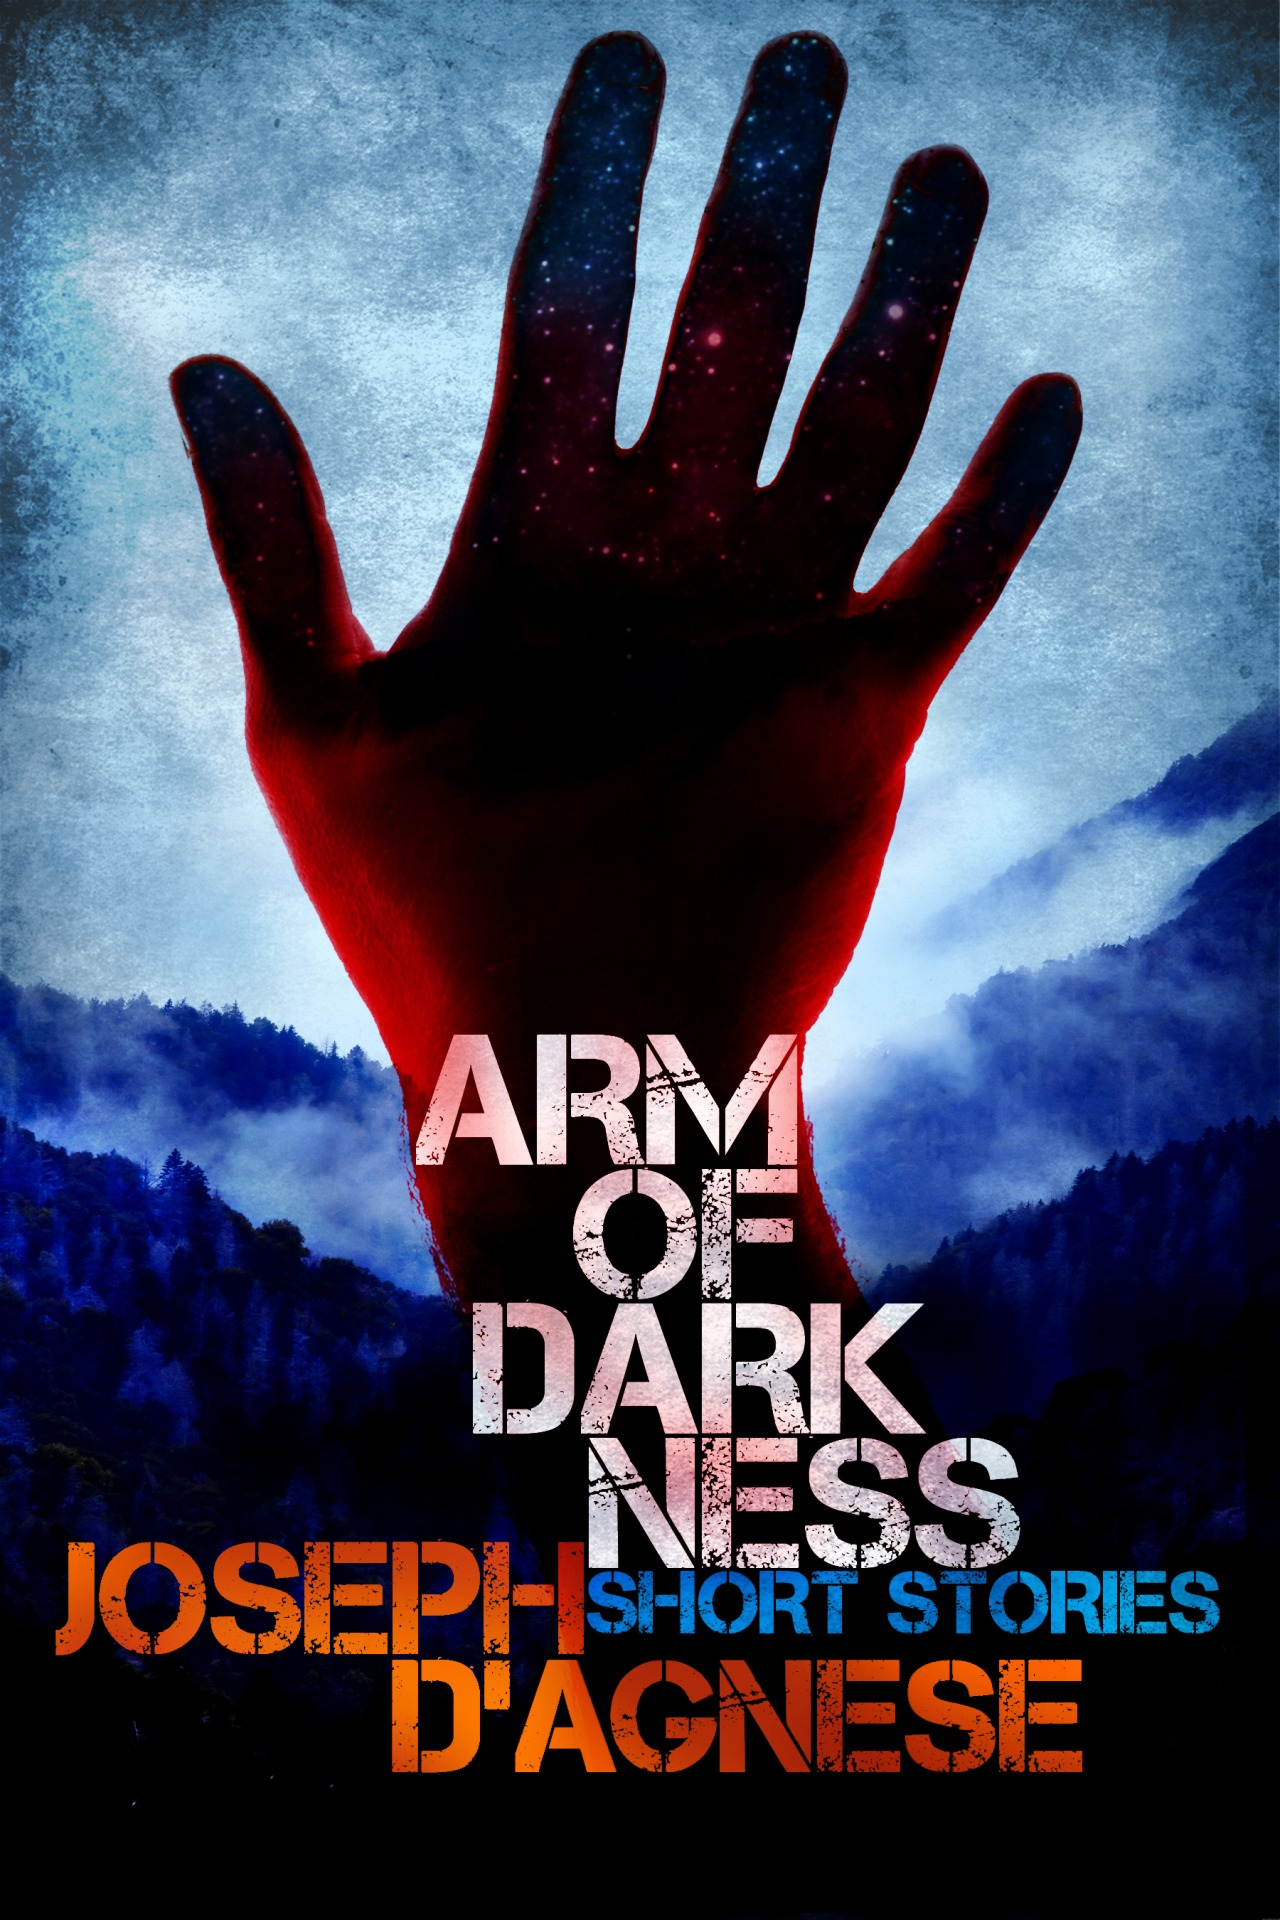 ARM OF DARKNESS. A mysterious demonic stranger intrudes upon the lives of unsuspecting people, forcing them to make choices with horrific consequences. Six short stories.  * * * His hand is fashioned from the night sky. It is powerful, dark, deadly. He dwells in the world's oldest mountains and always comes bearing gifts. Truth is, he cares nothing for you. He is a trickster, a prankster, a demonic being who desires only to wreak casual violence on every human he meets. He's about to offer you a bargain.  Piece of advice? Don't trust him. * * * ARM OF DARKNESS contains six short stories—Skullworm, Roadhouse, Glow, Kin, Sunshine Lady and the origin story, Arm of Darkness—for a total of 30,000 words. Three novel excerpts are also included in this e-book. Available: Kindle (US) Kindle (UK) Nook iPad Kobo Smashwords Paperback